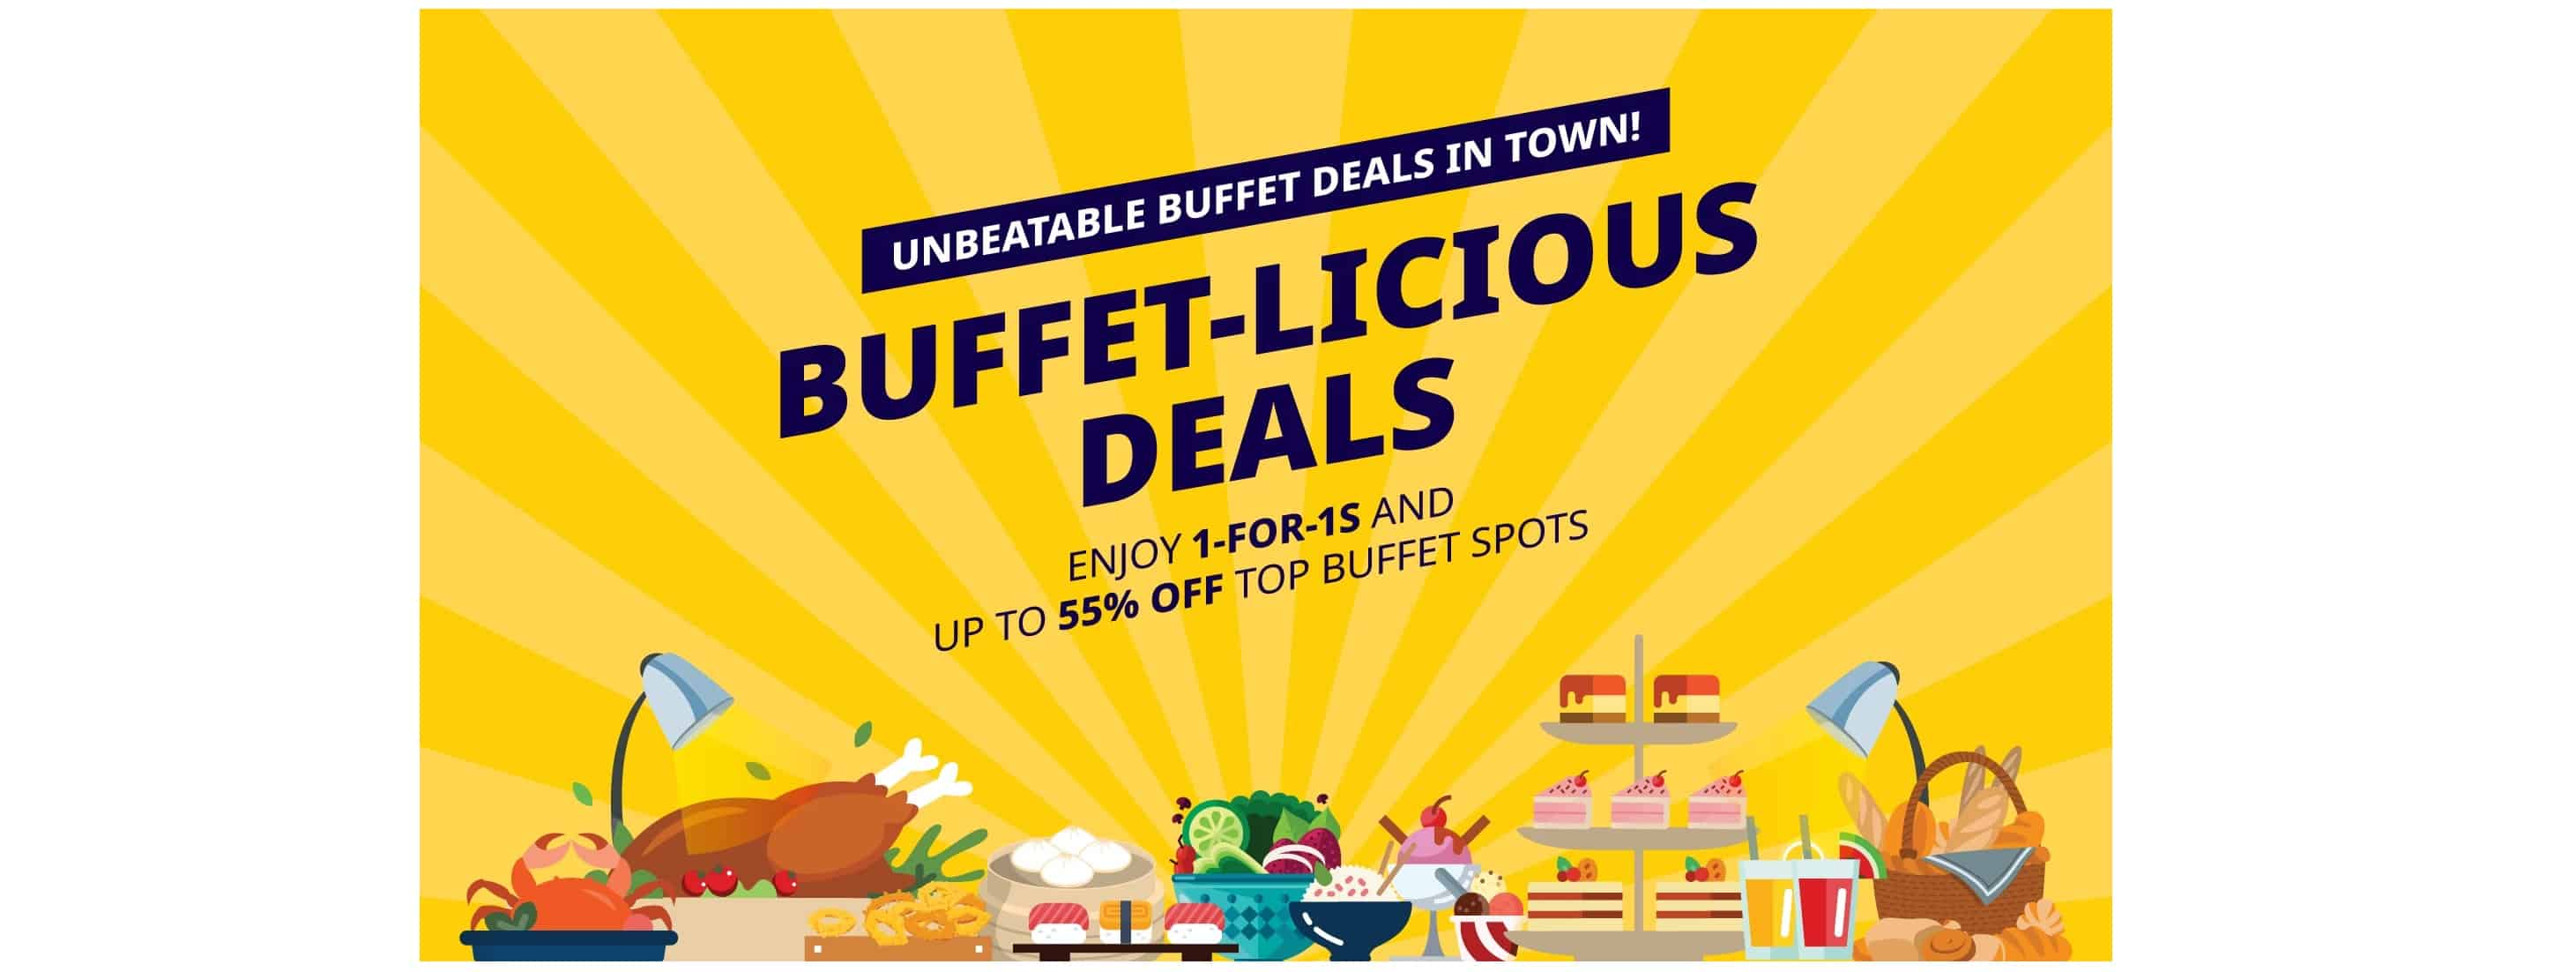 Chope 1 for 1 buffets